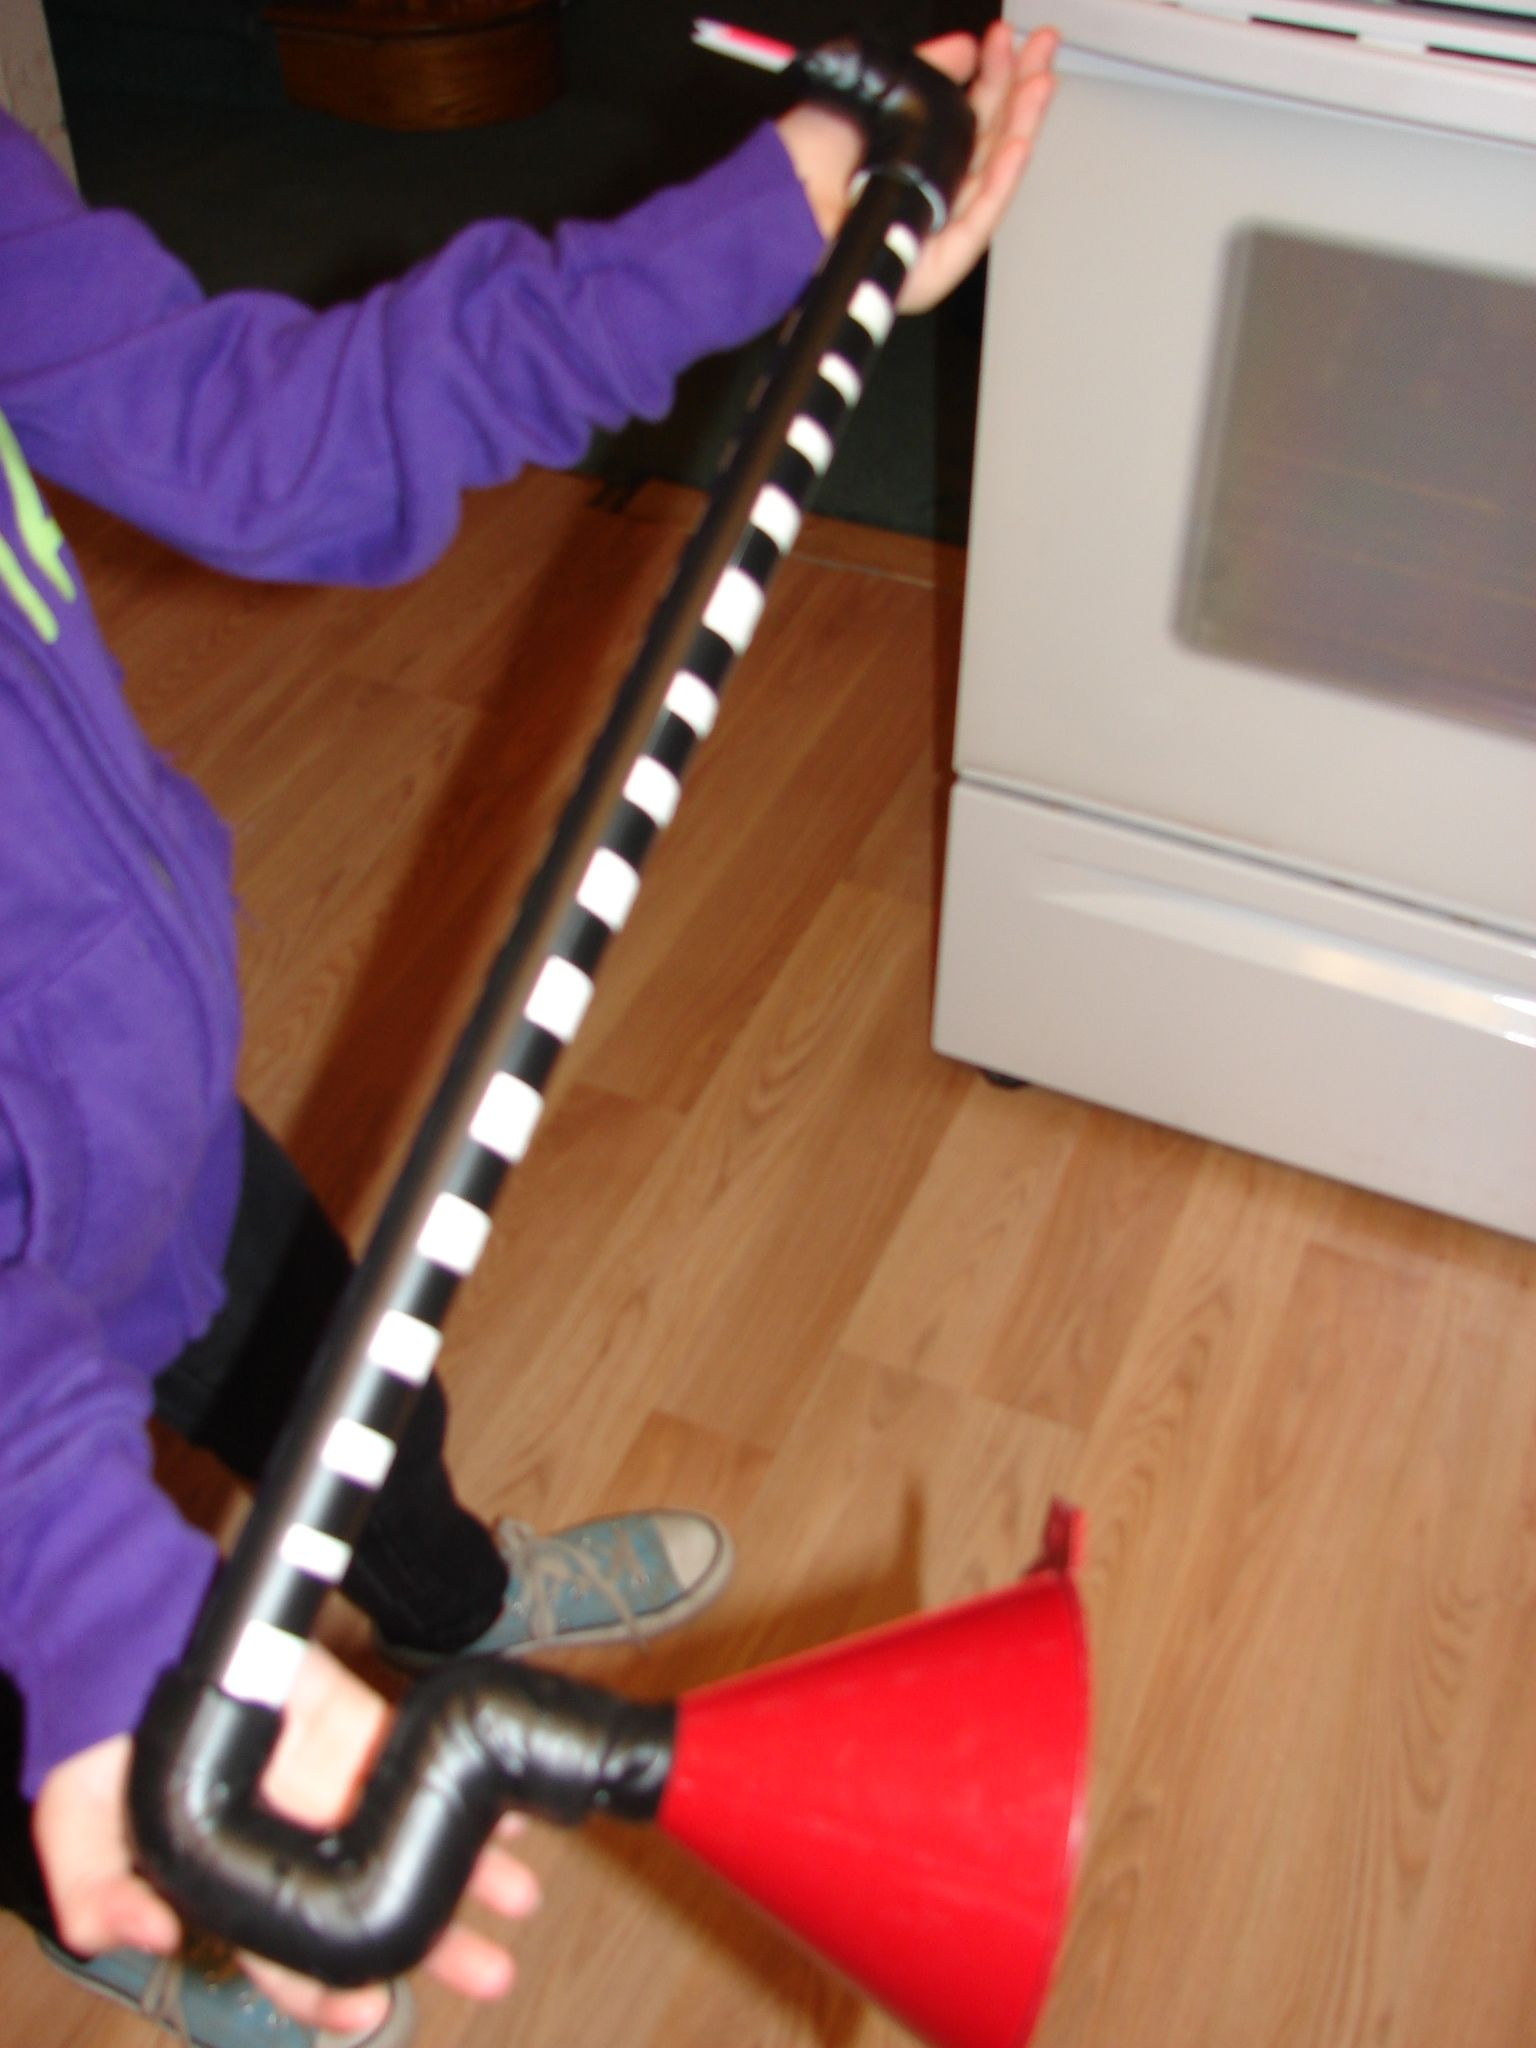 homemade saxaphone for science class made out of pvc pipe